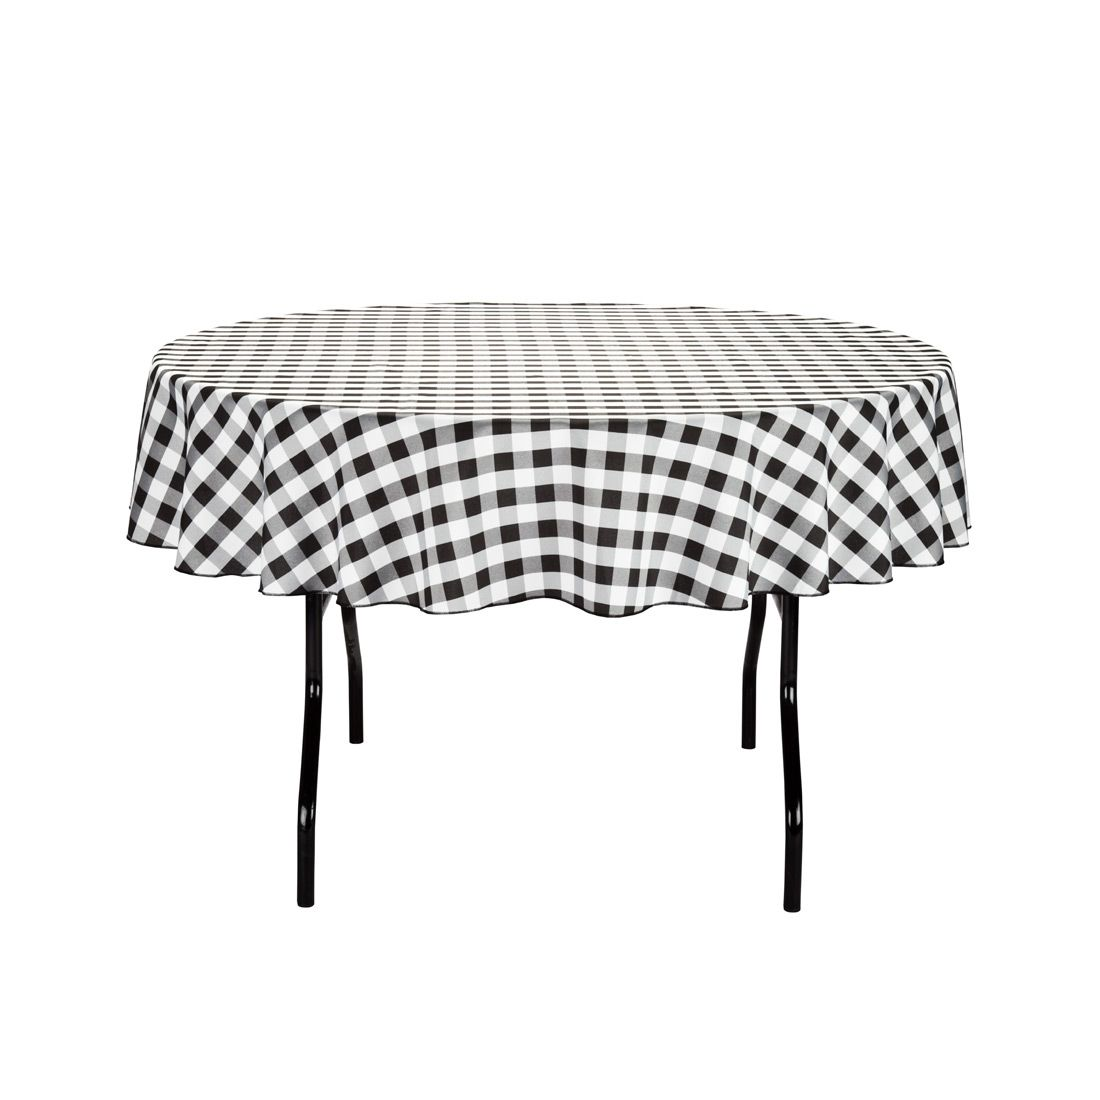 round tablecloth black white checkered main accent west elm outdoor furniture carpet tile trim strips glass and gold coffee table holiday runner patio clearance lawn cloth arcadia